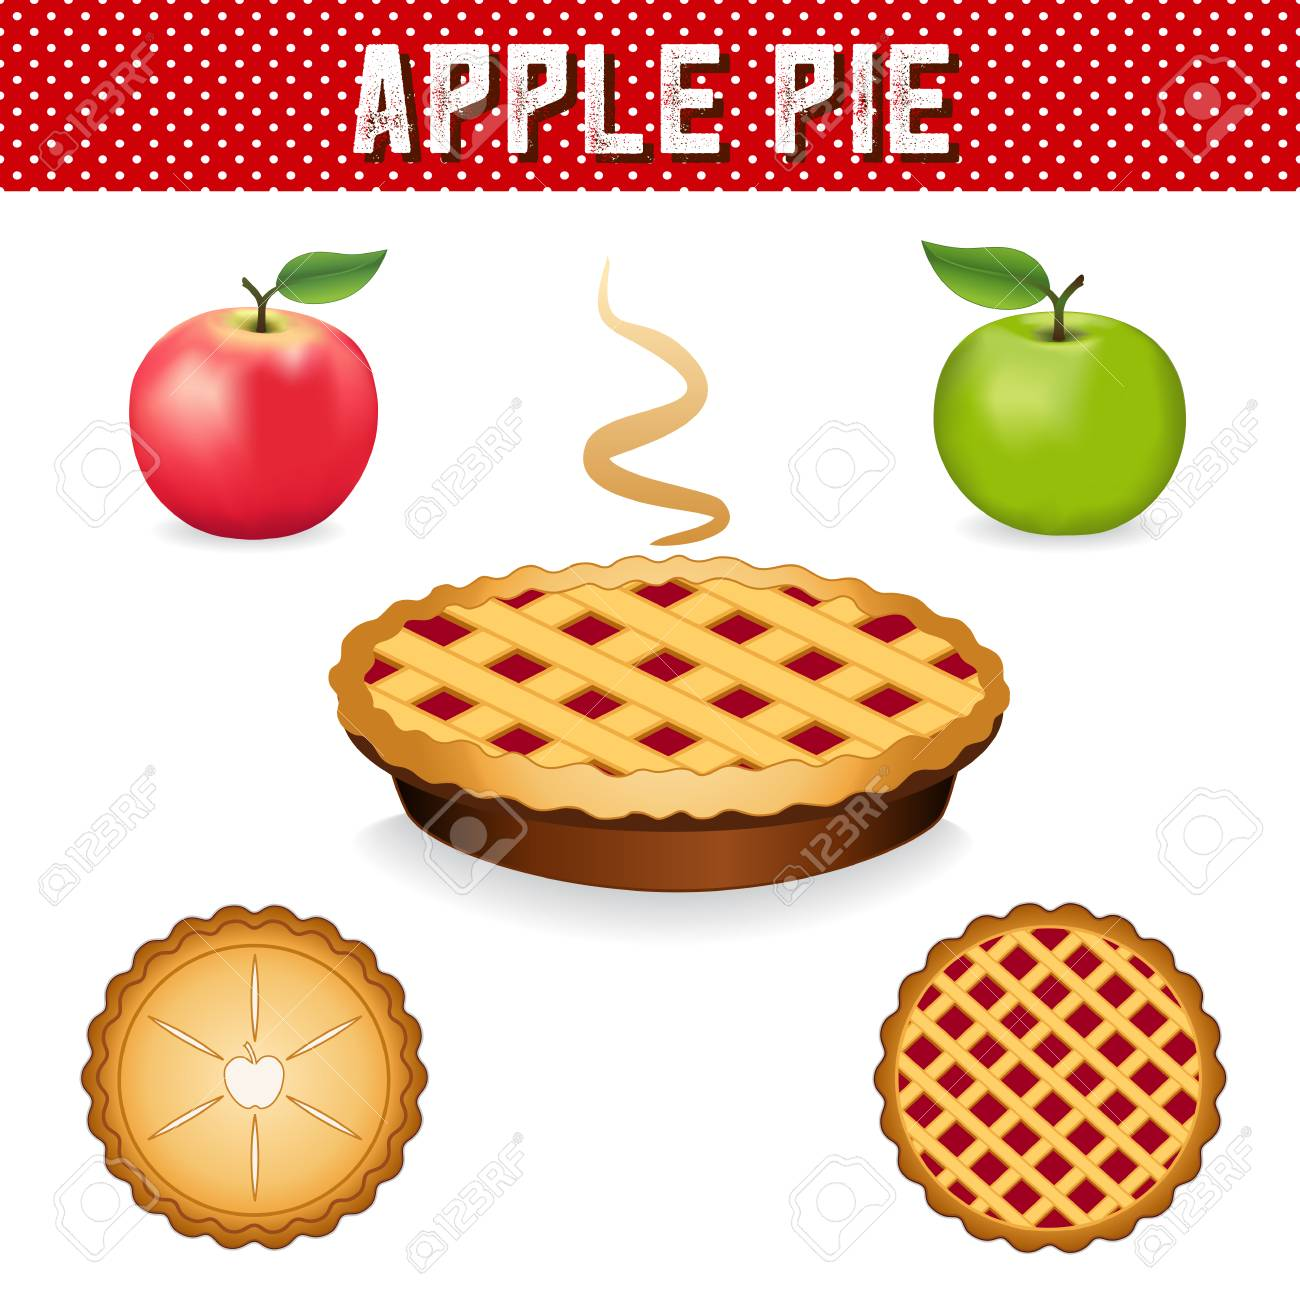 Apple Pie, green Granny Smith and Pink apple fruits, three views, isolated on white background, red polka dot background, eps includes pattern swatch. - 102634601